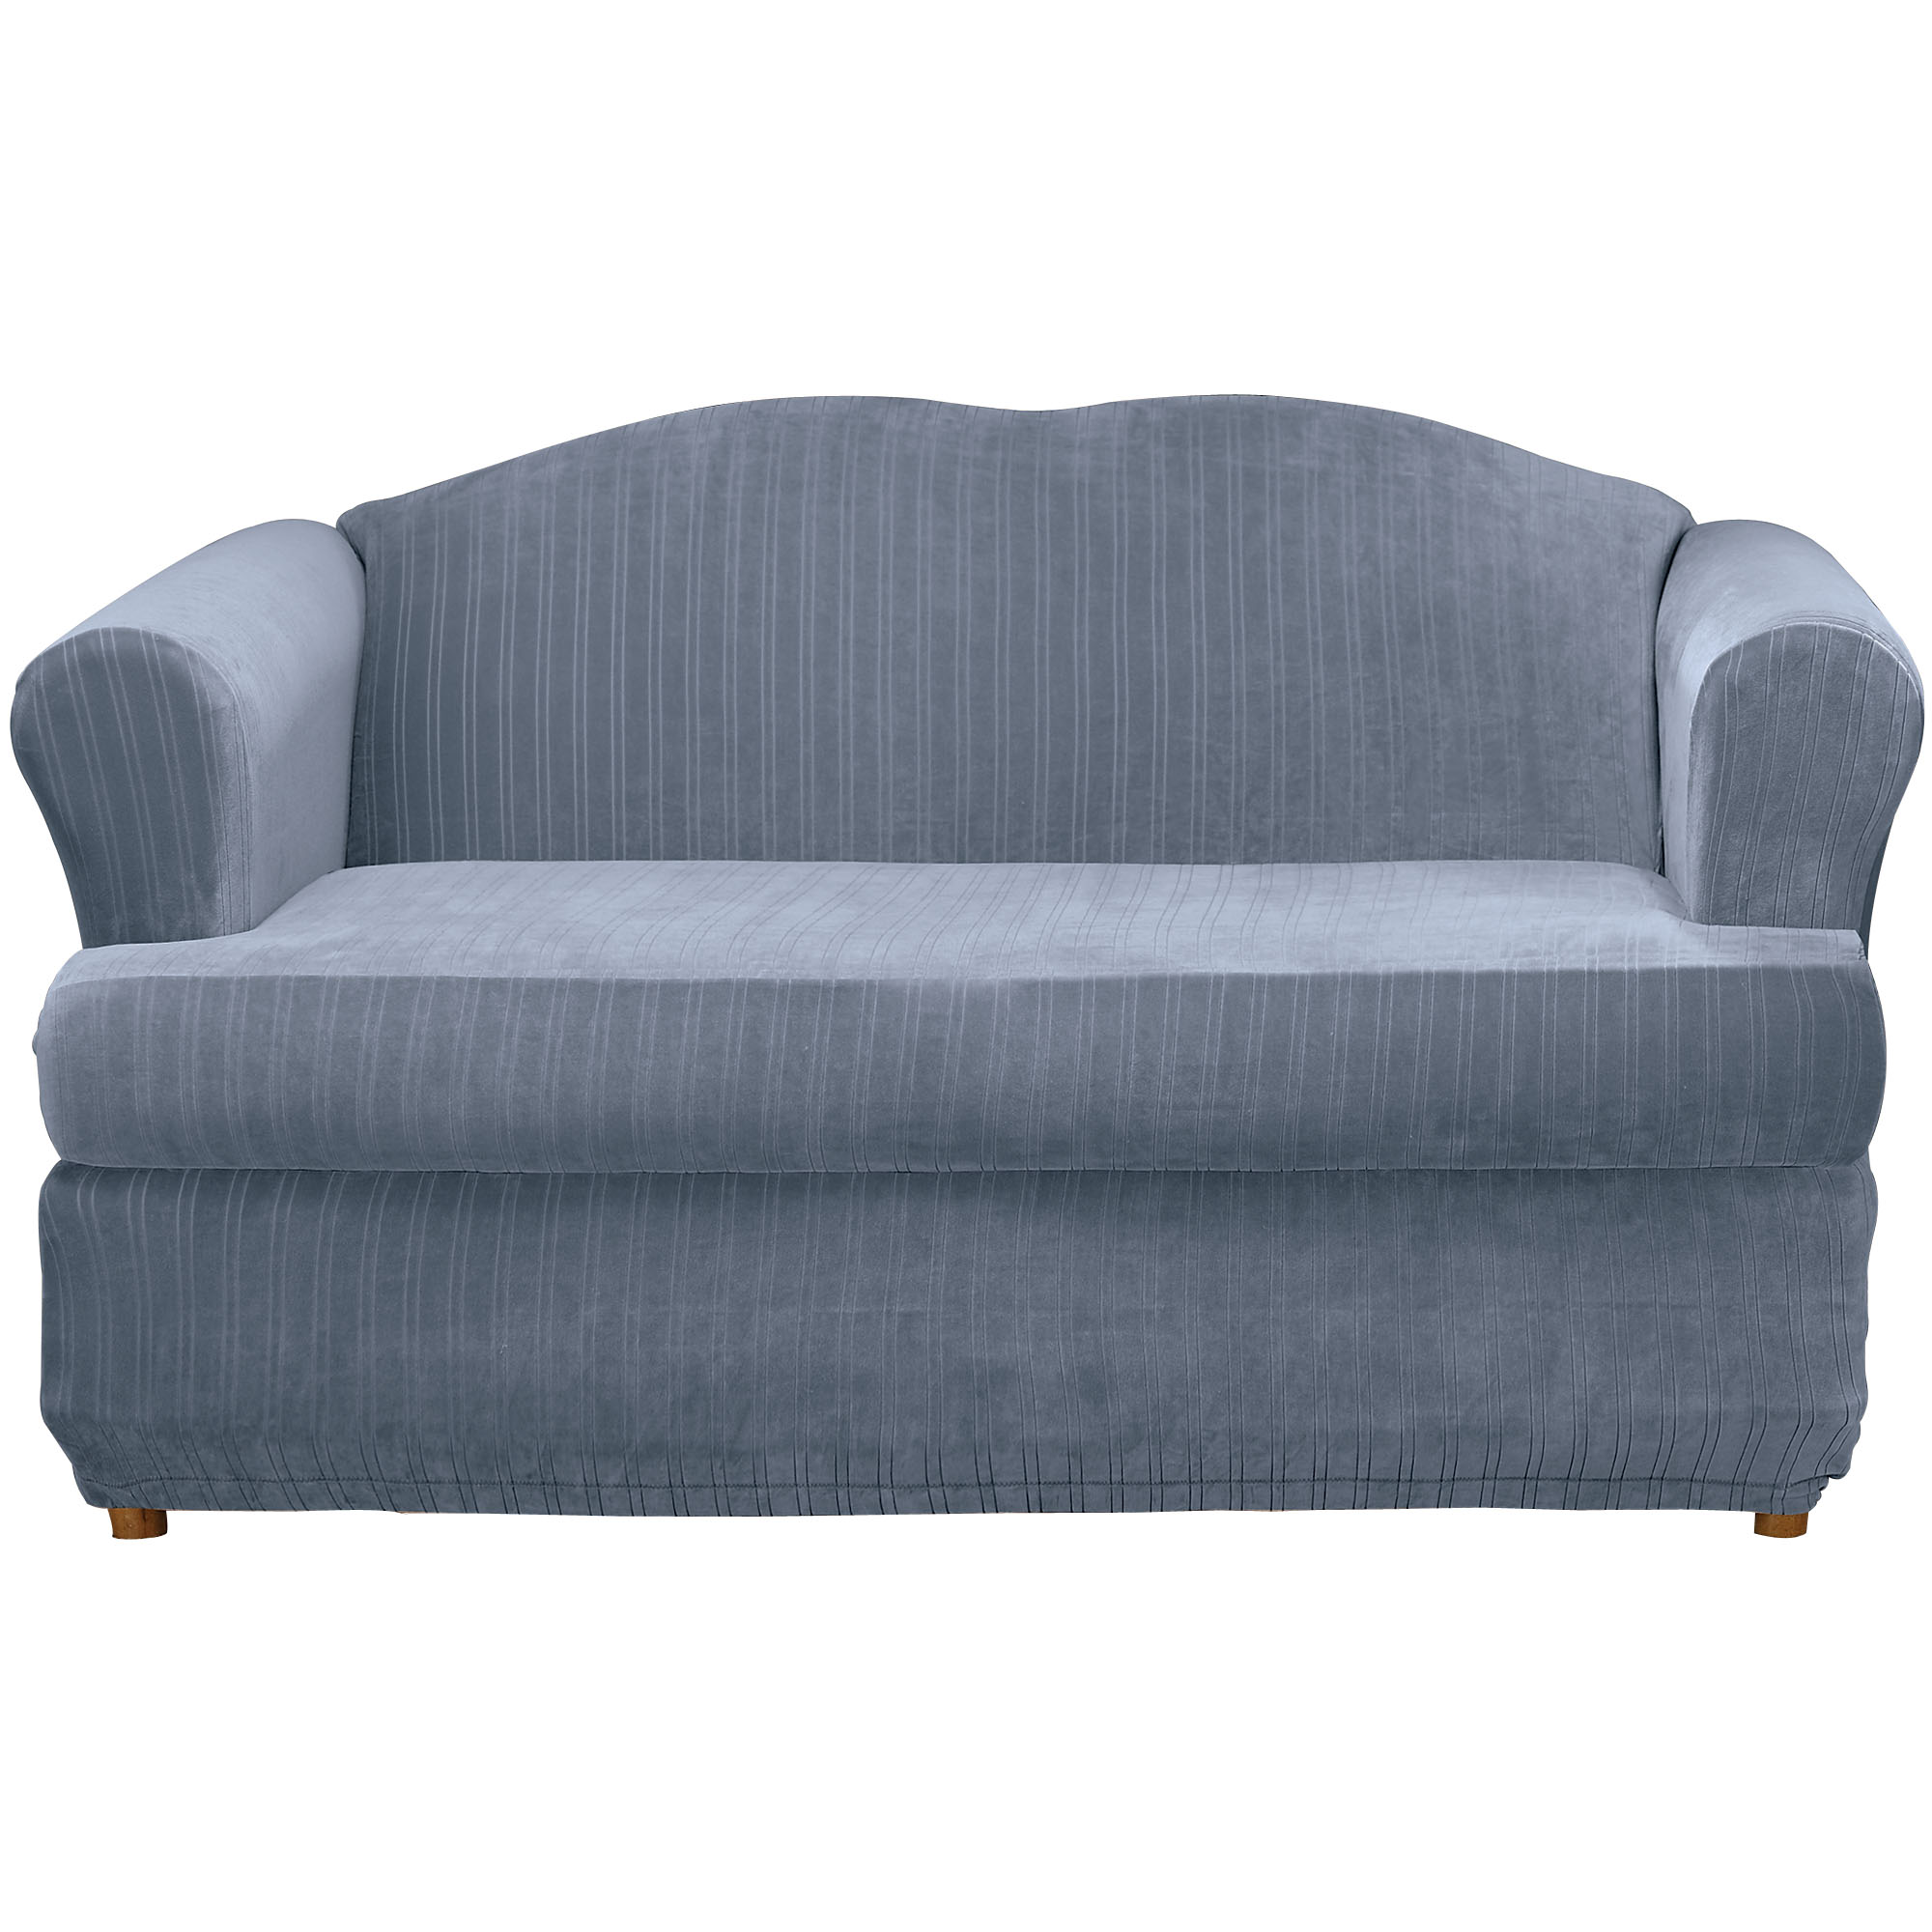 Product features Loveseat stretch slipcovers